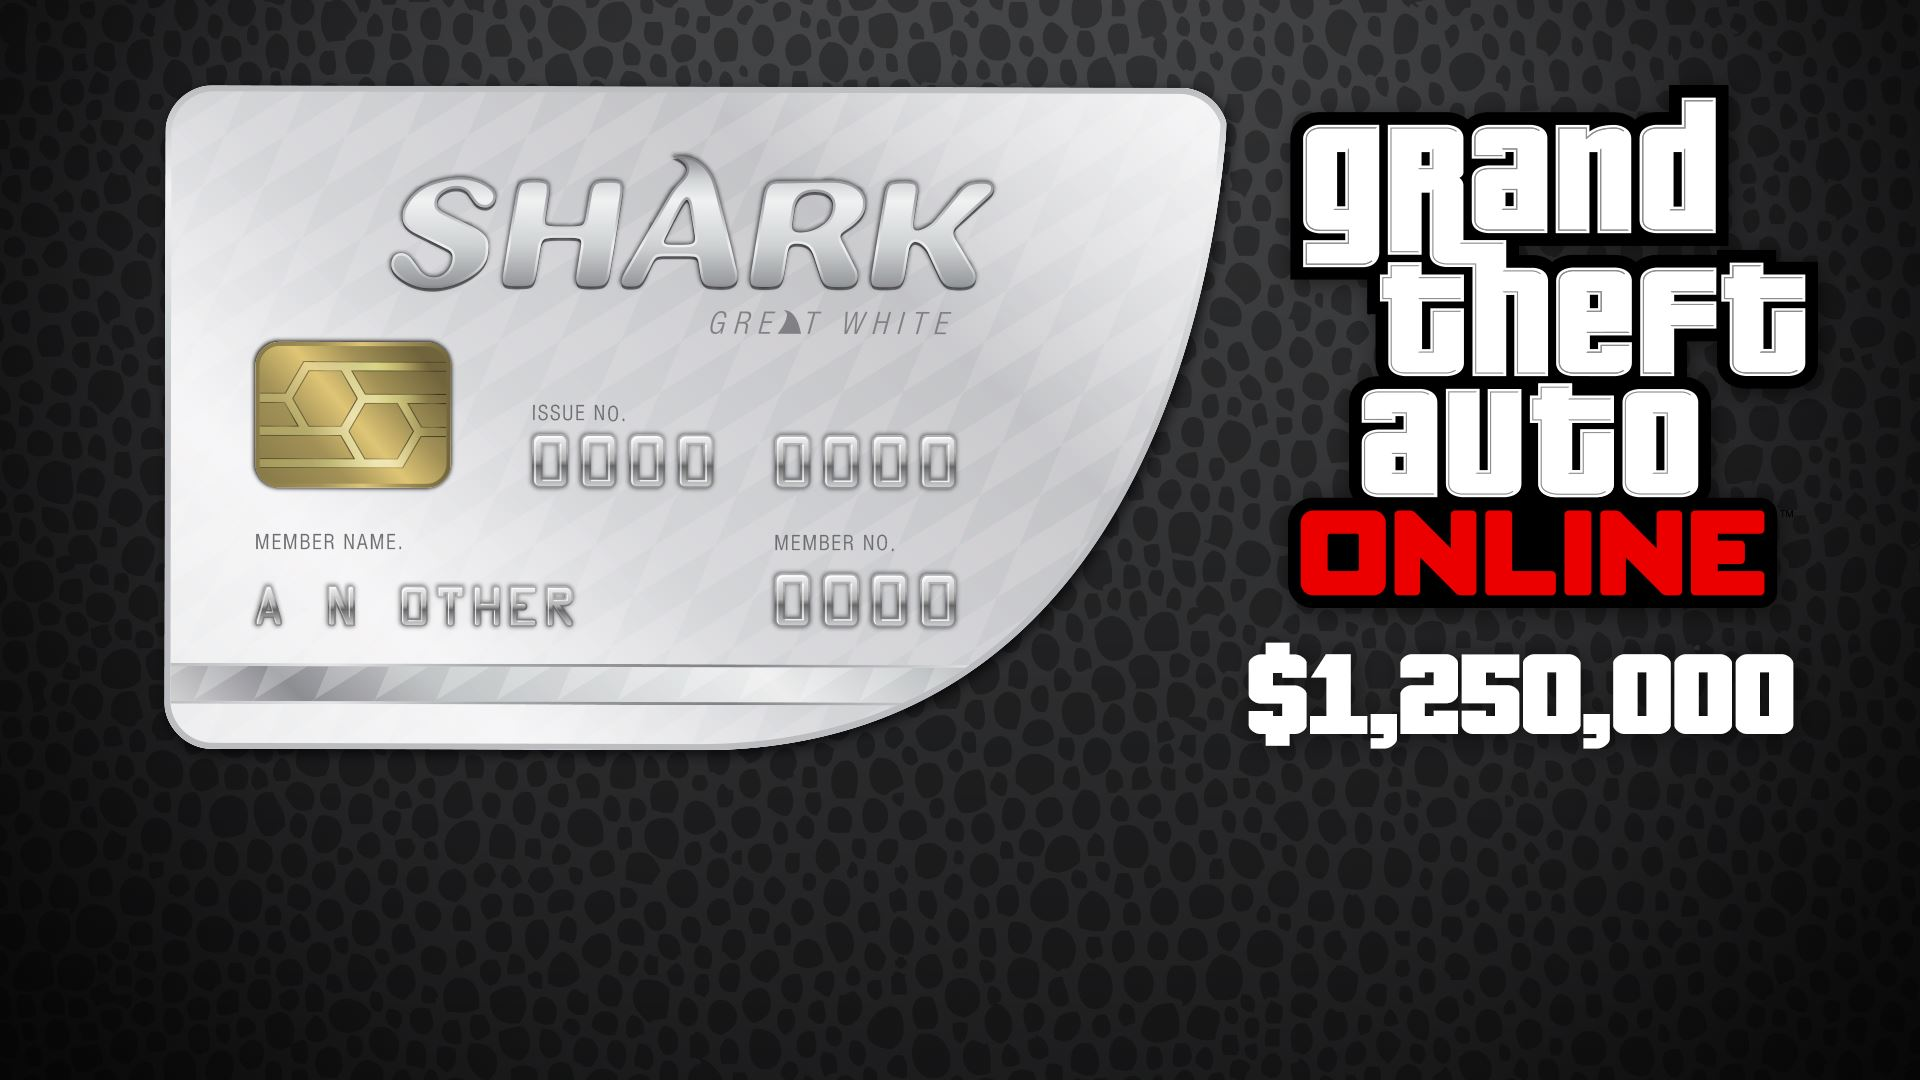 Grand Theft Auto Online: Great White Shark 1 250 000 $